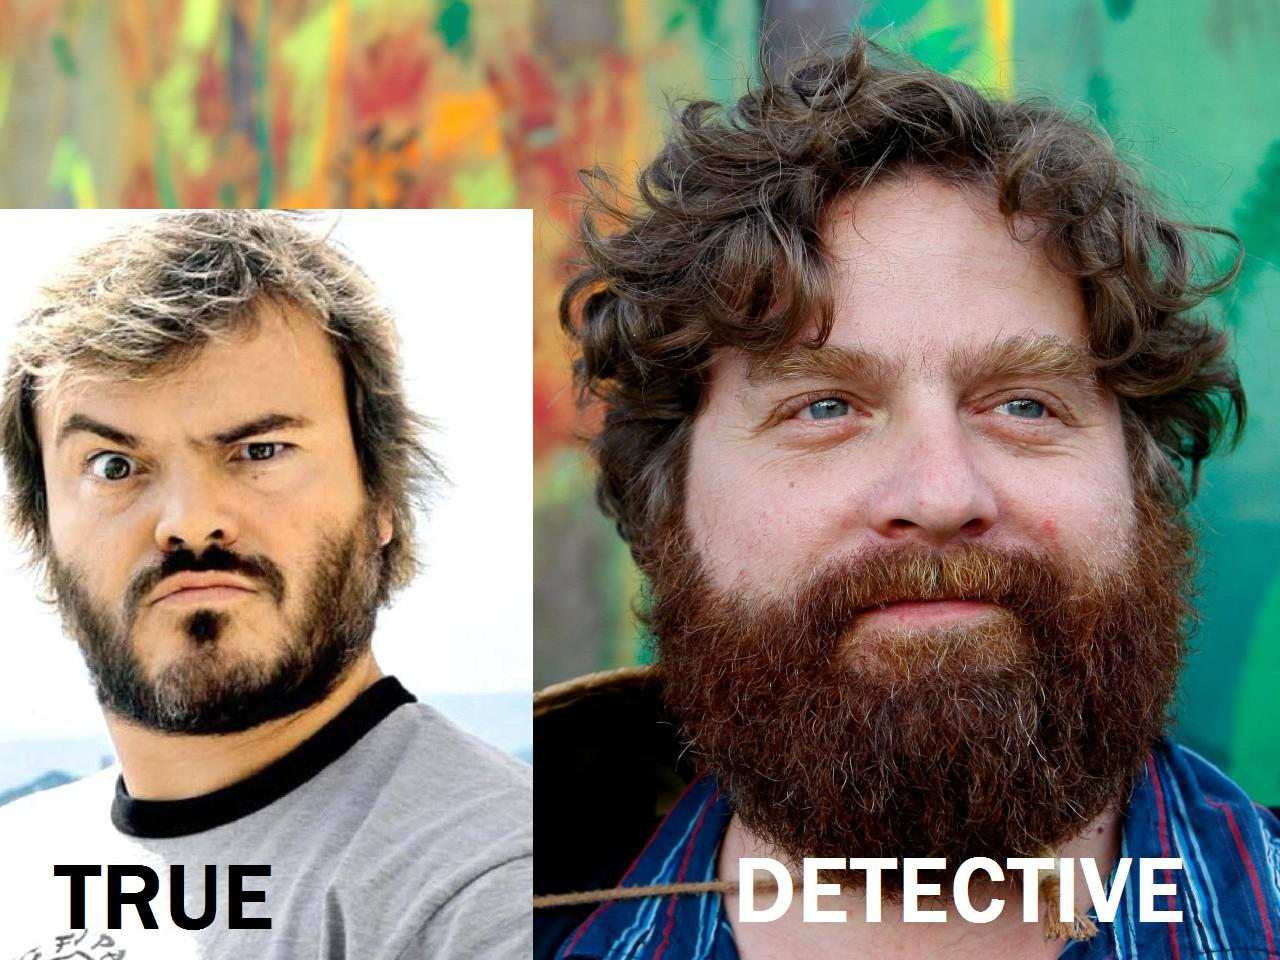 ZACH GALIFIANAKIS AND JACK BLACK TAPPED FOR TRUE DETECTIVE 2